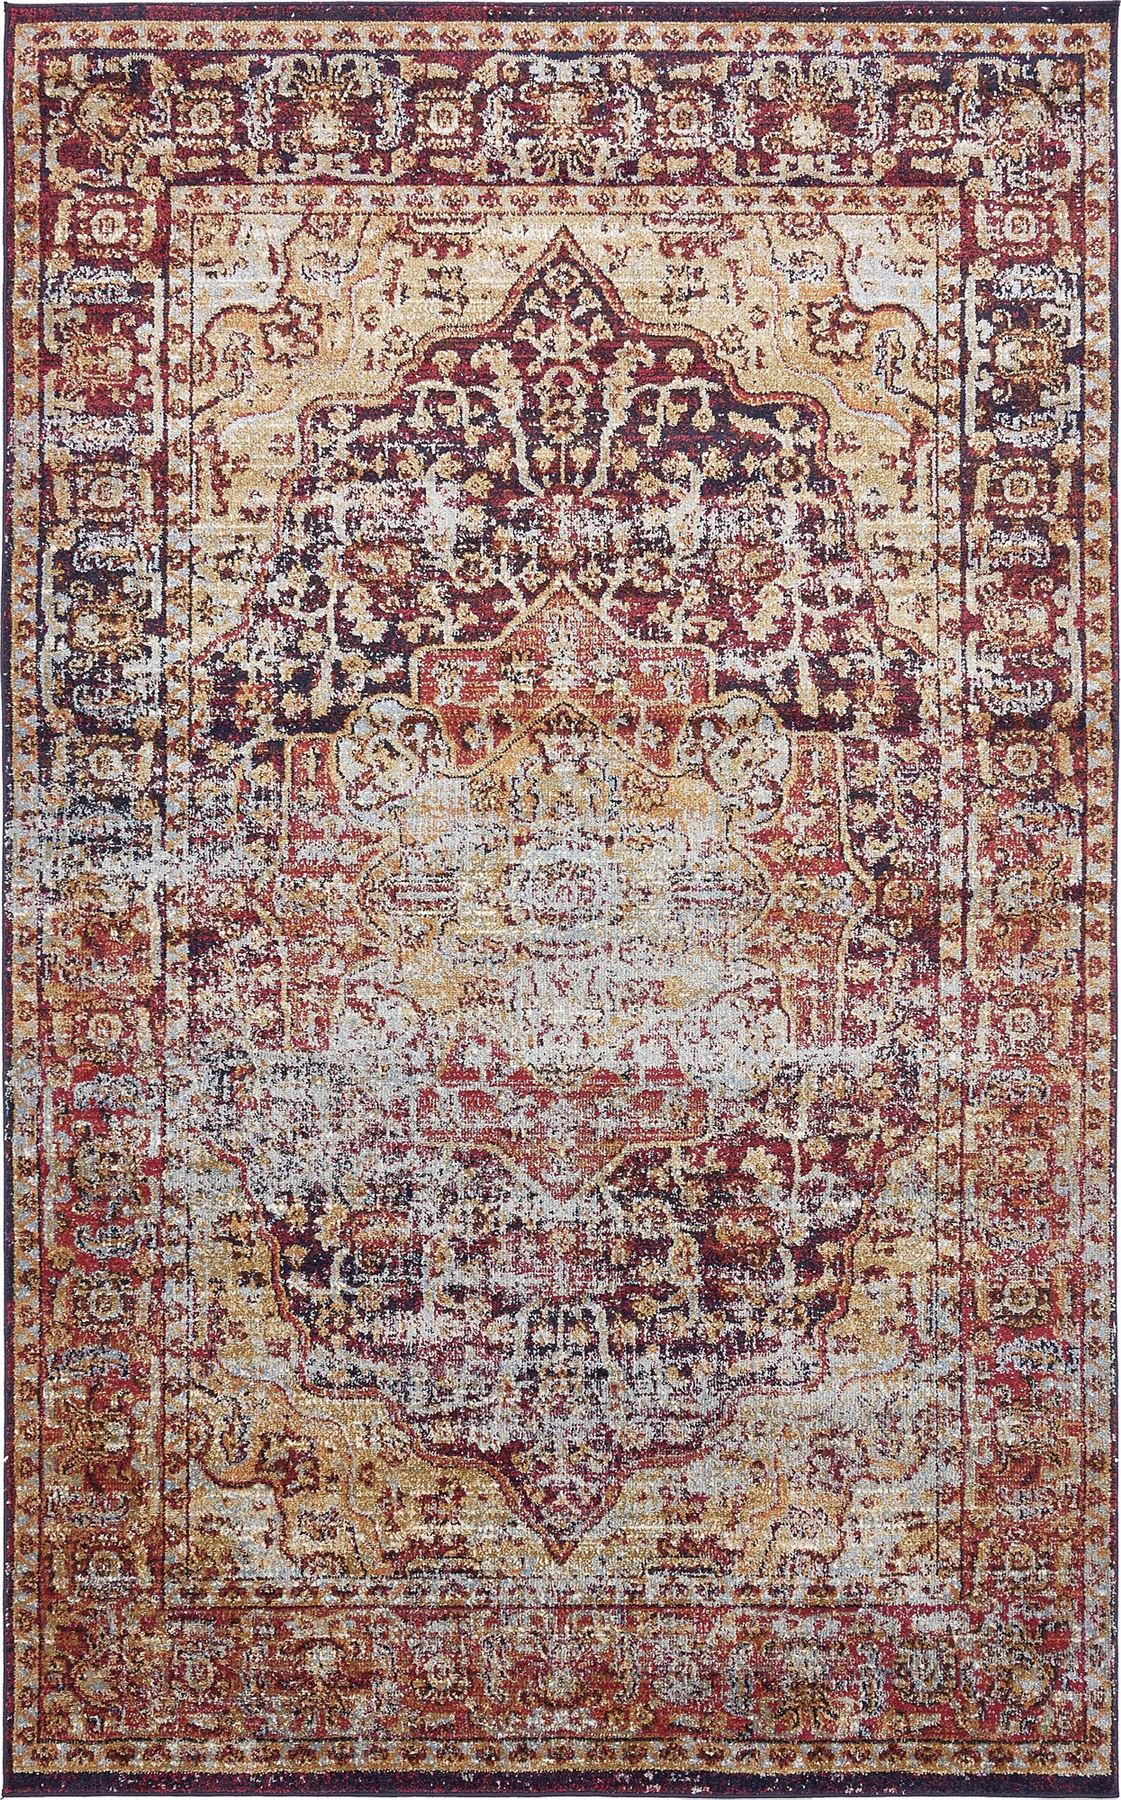 Medallion style rugs traditional carpets over dyed vintage for Vintage style area rugs